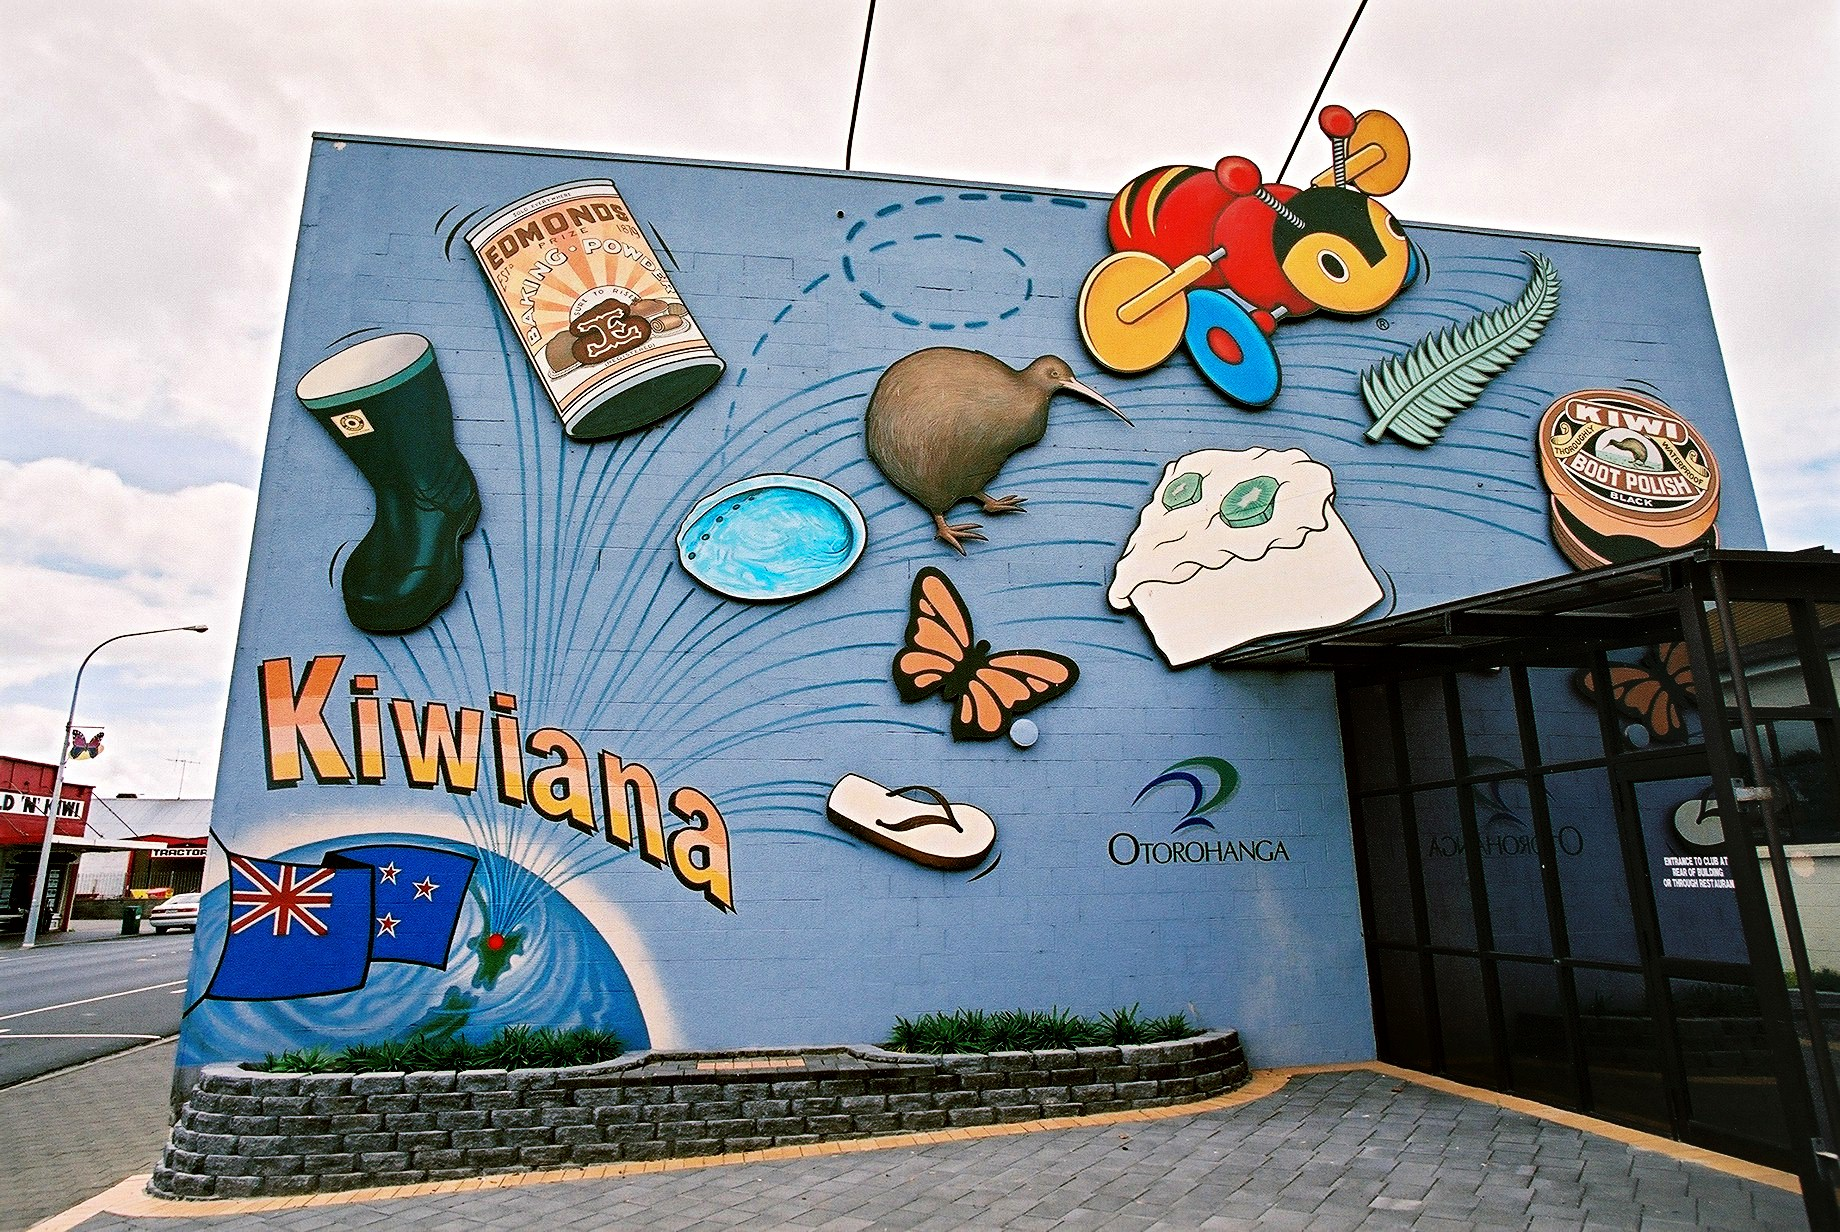 Kiwiana wall,  Otorohanga, New Zealand